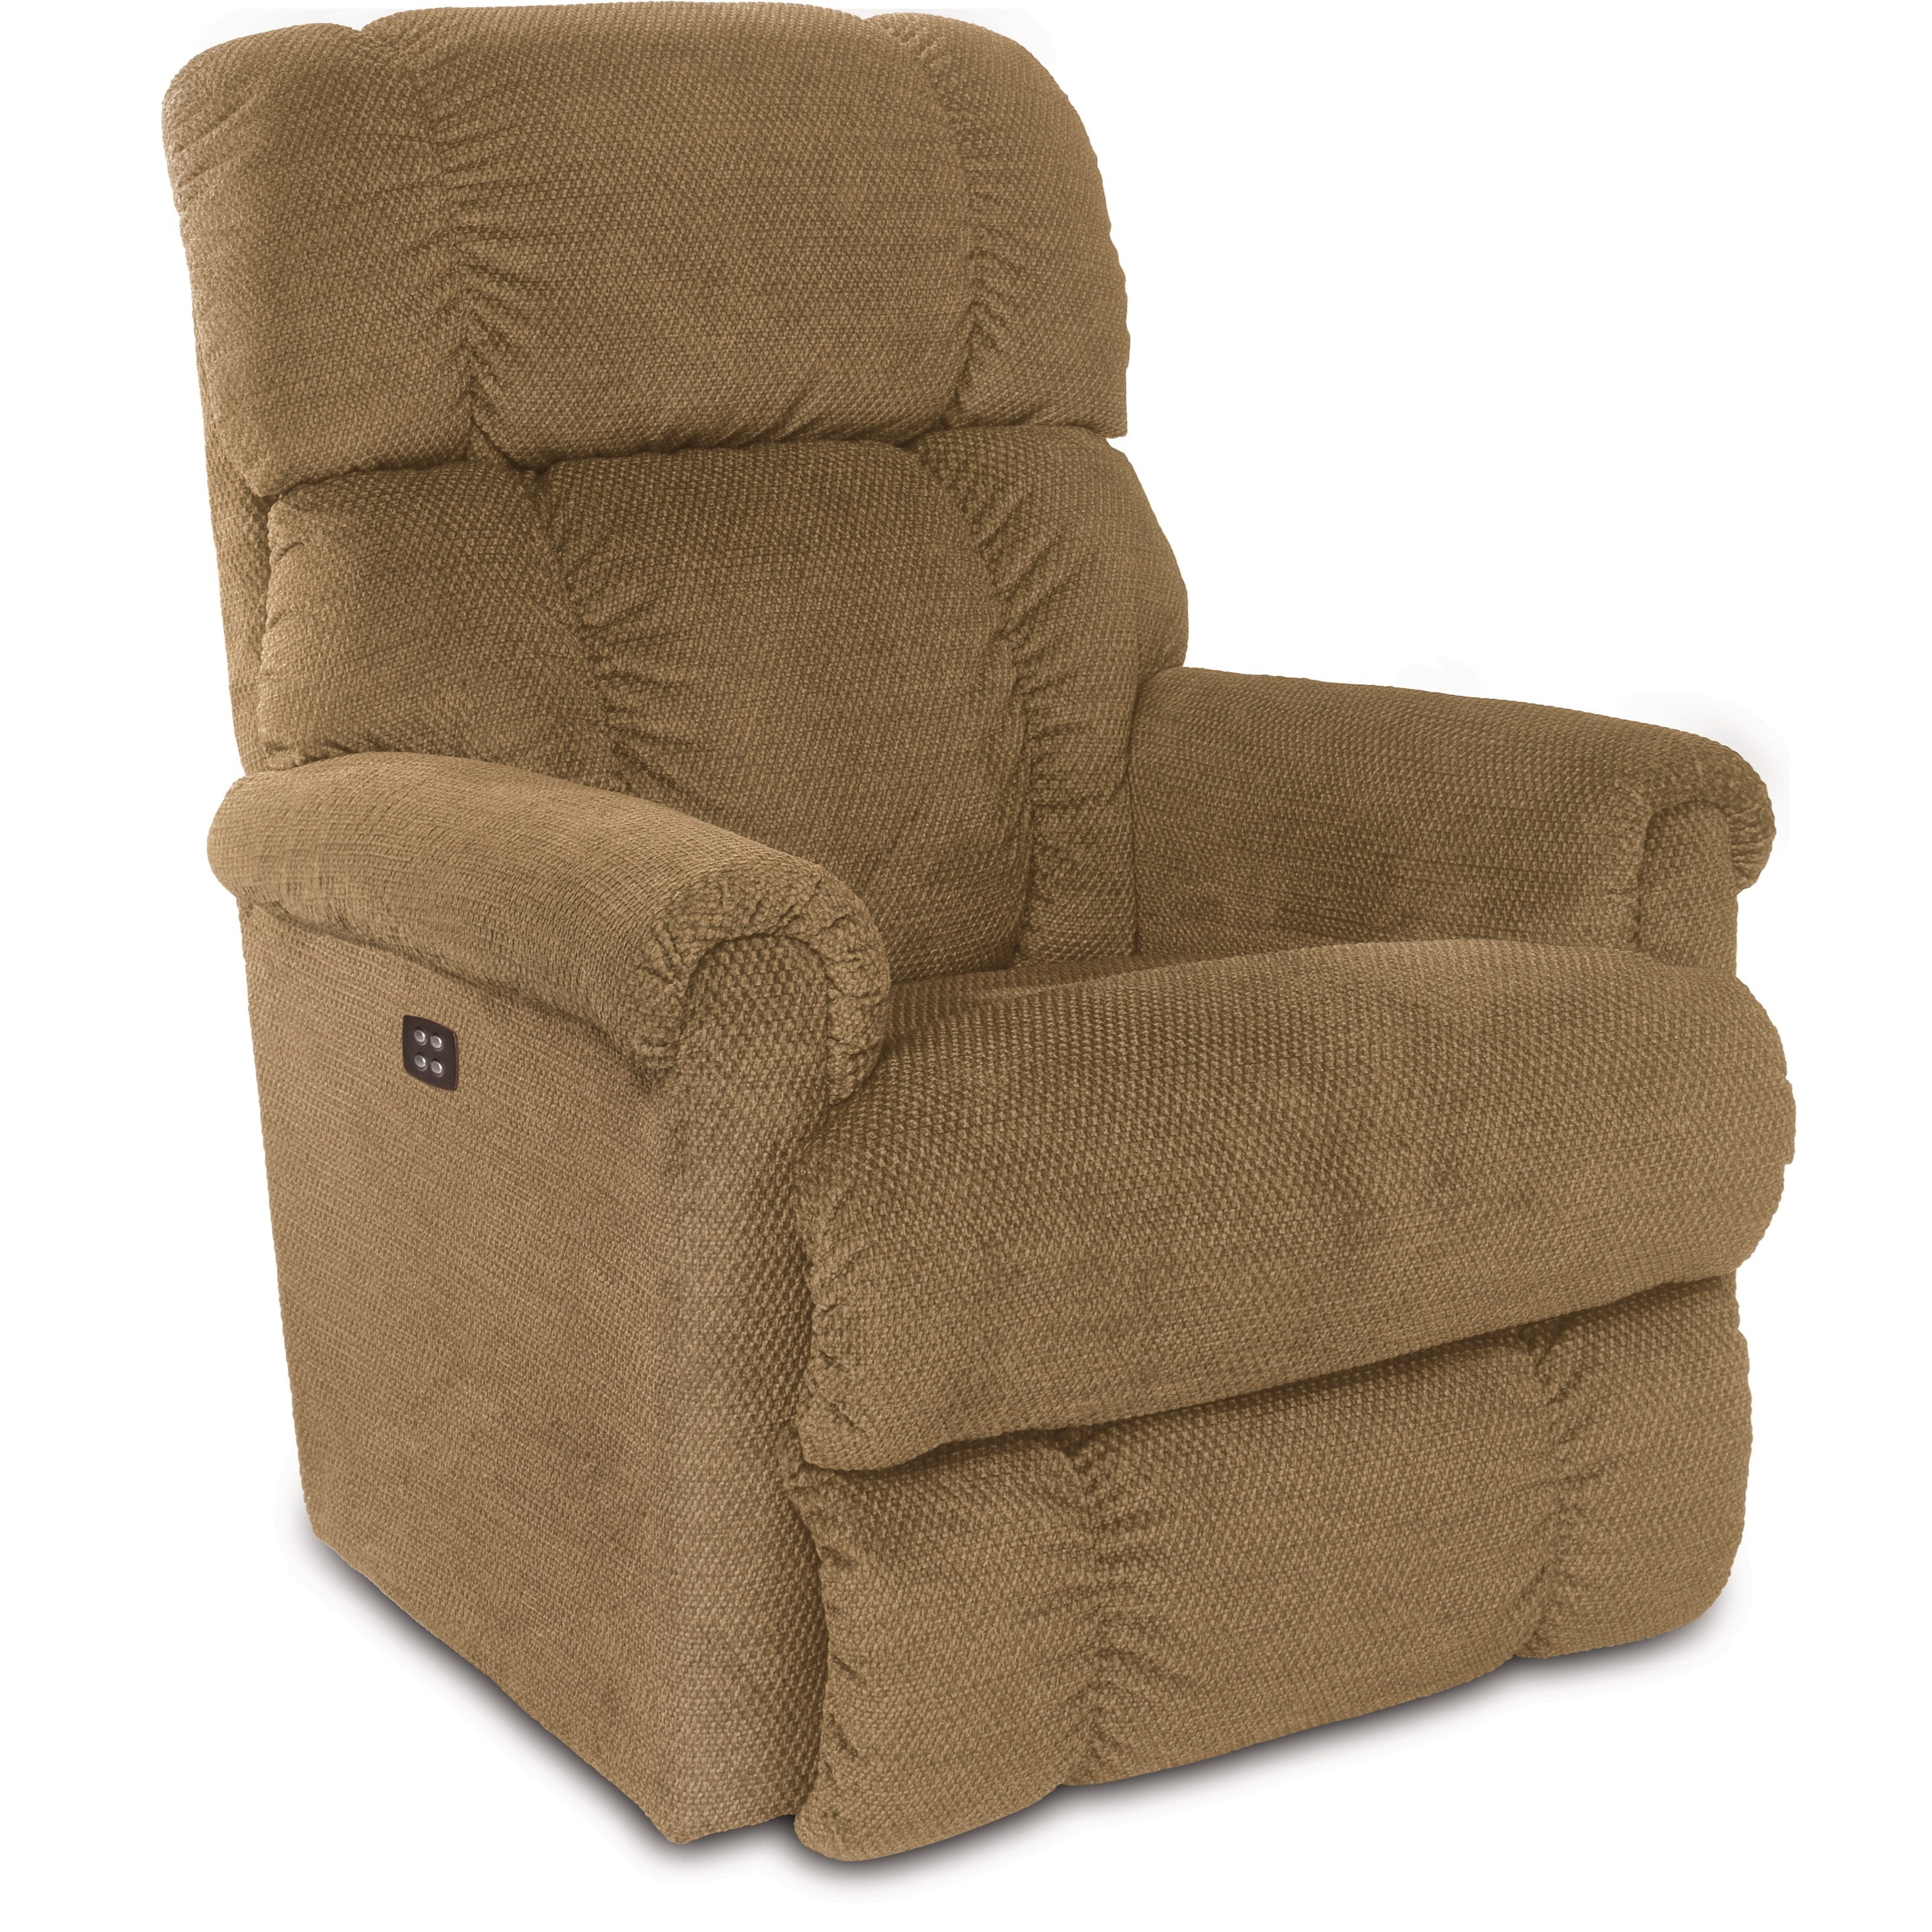 Pinnacle Power Rocker Recliner by La-Z-Boy at Home Furnishings Direct